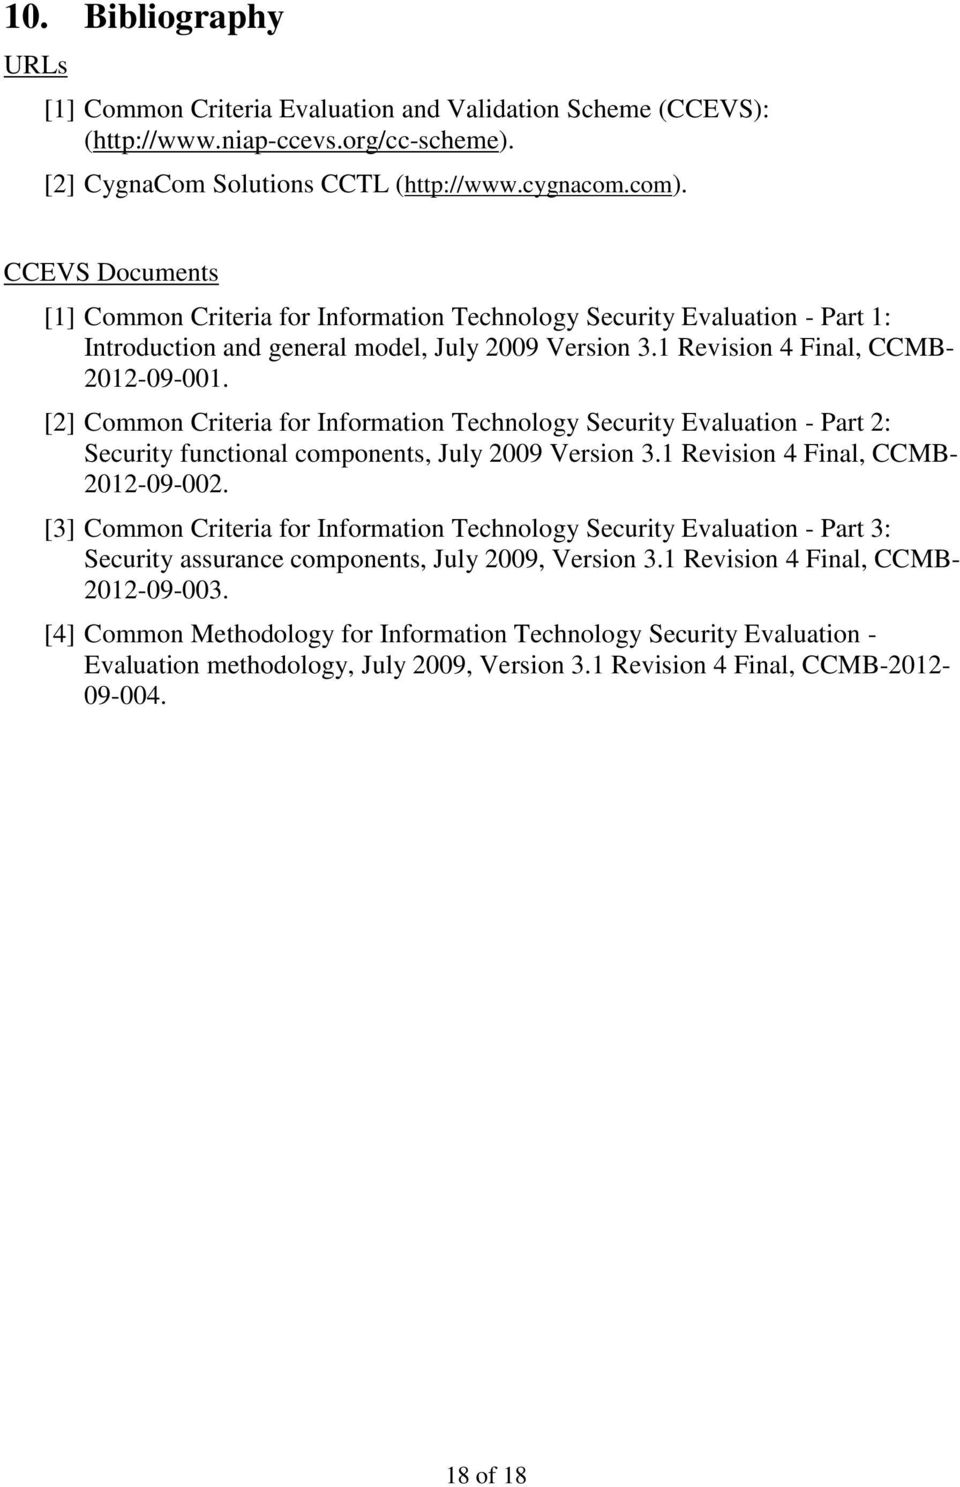 [2] Common Criteria for Information Technology Security Evaluation - Part 2: Security functional components, July 2009 Version 3.1 Revision 4 Final, CCMB- 2012-09-002.